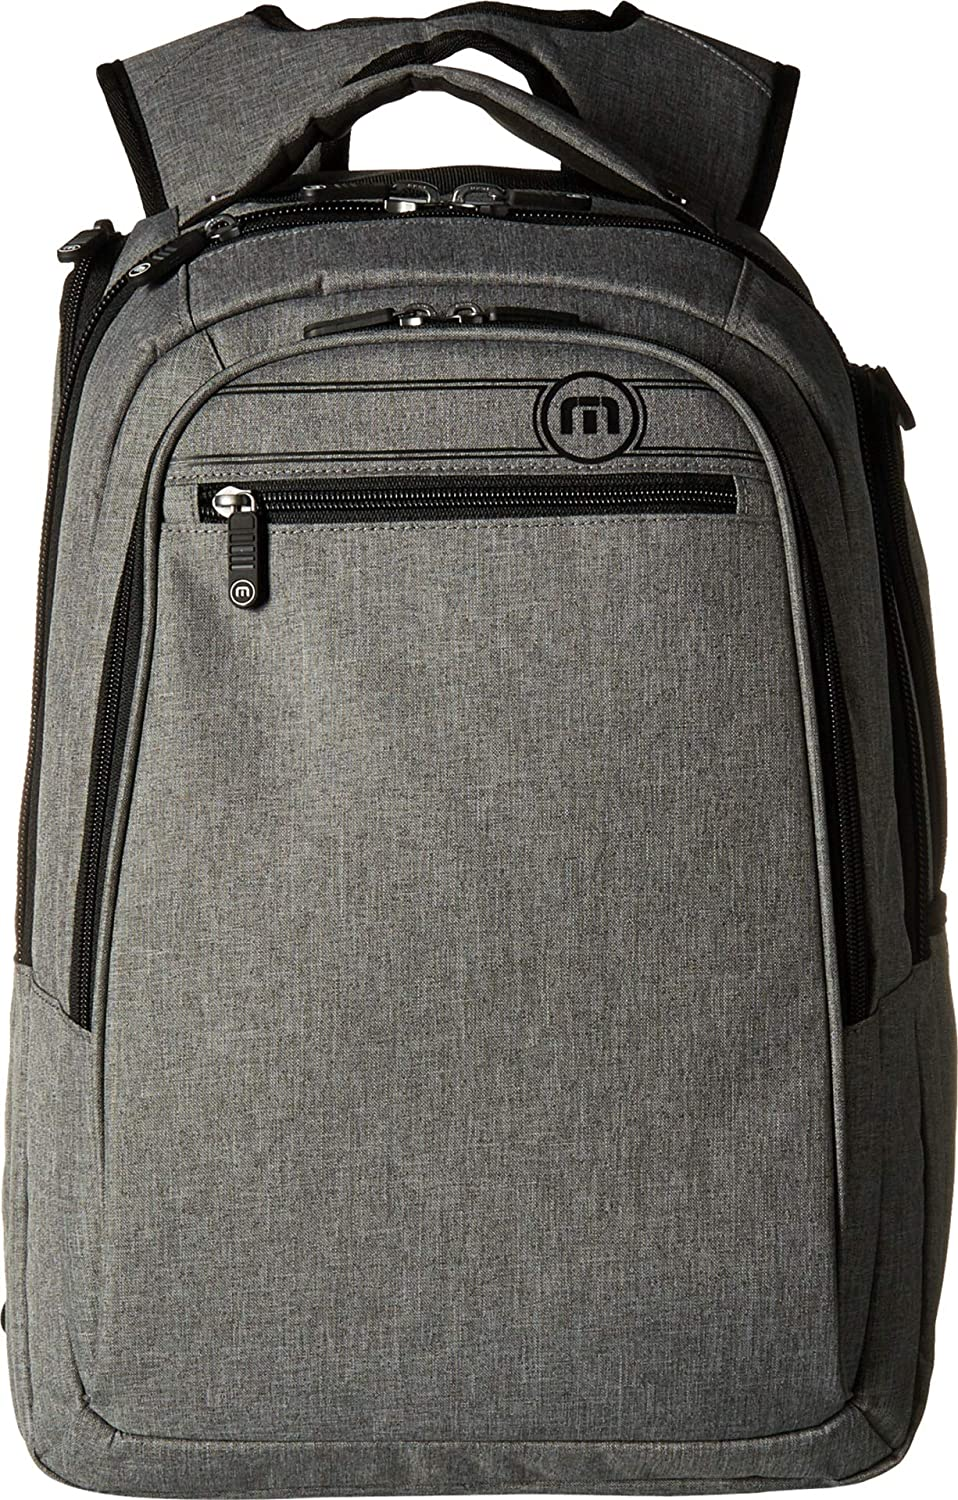 TravisMathew Unisex The Go Backpack